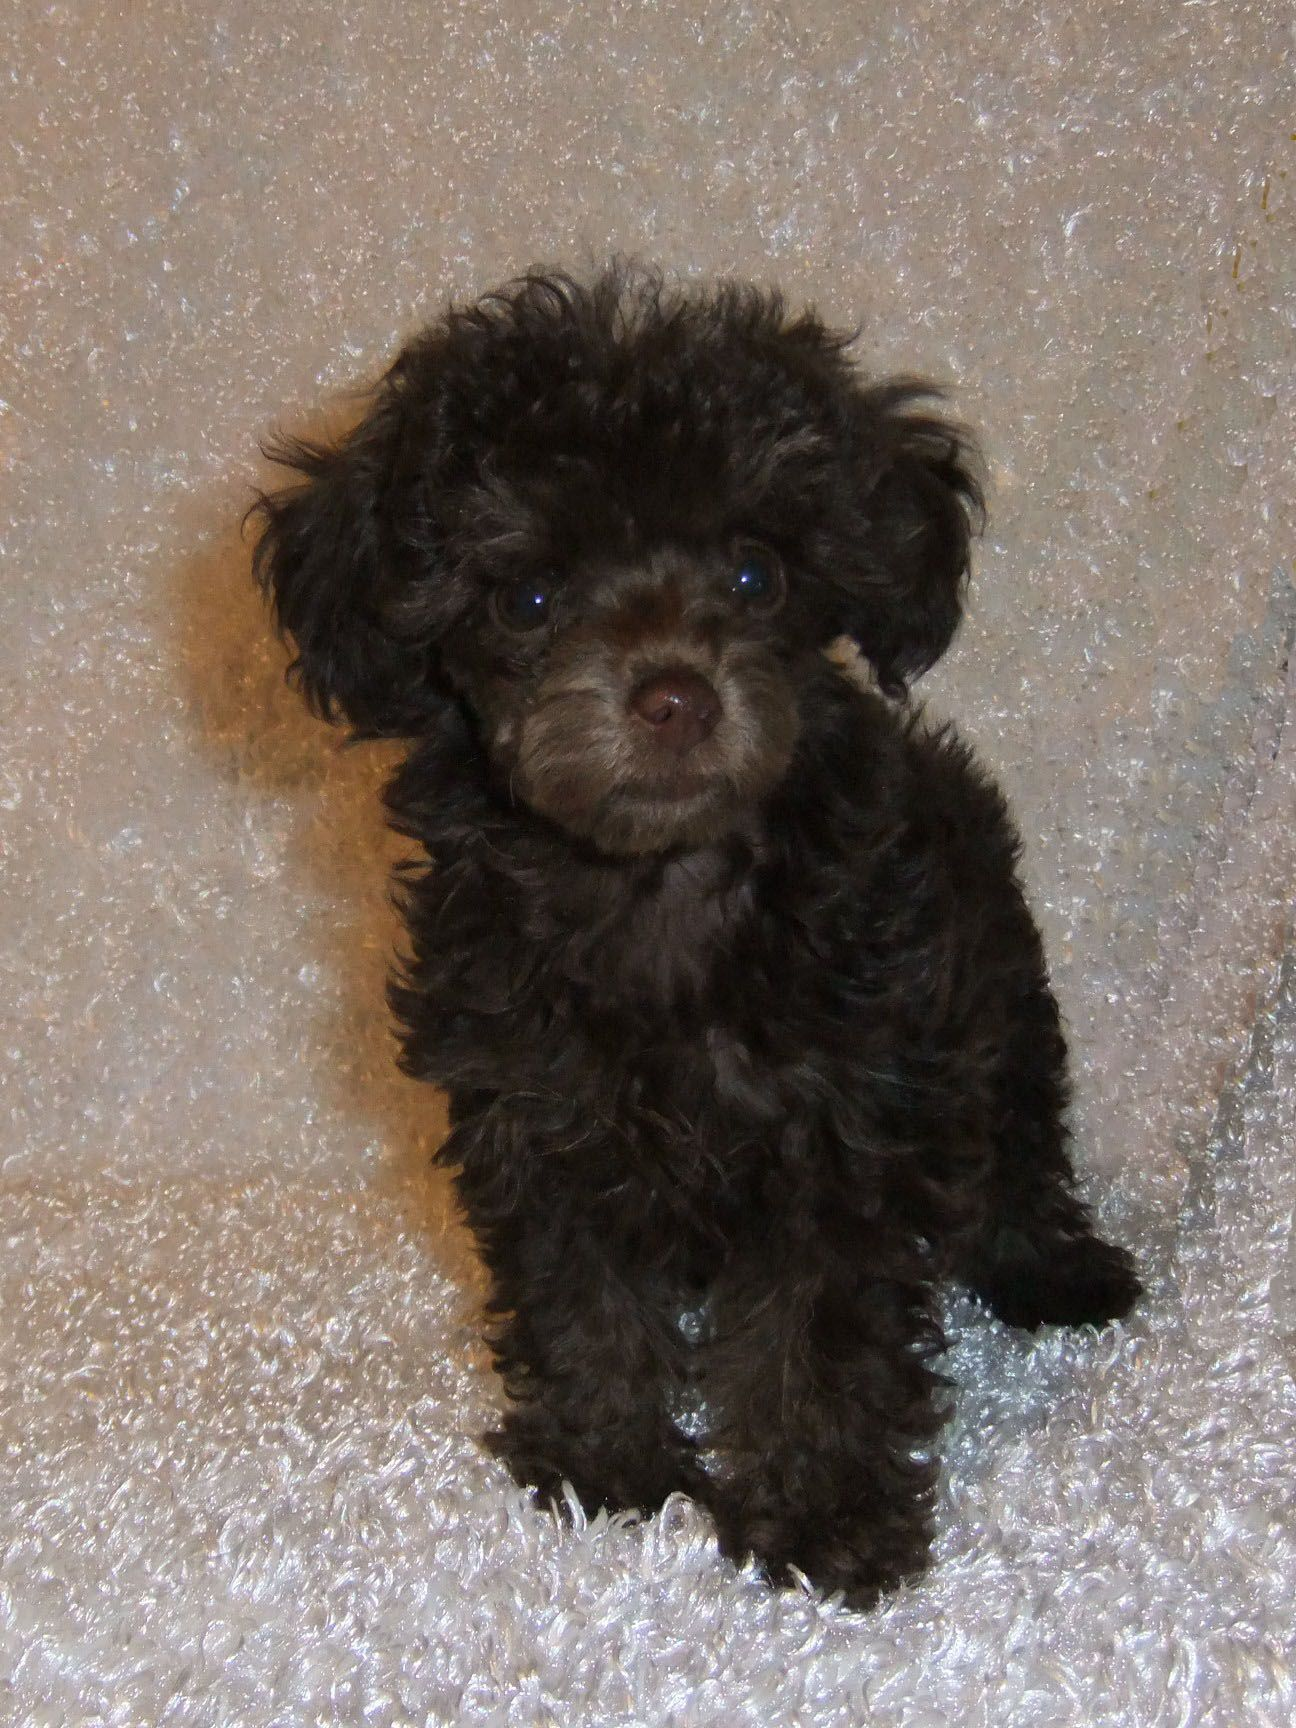 Teacup Poodles Teacup poodle puppies Toy poodle puppies